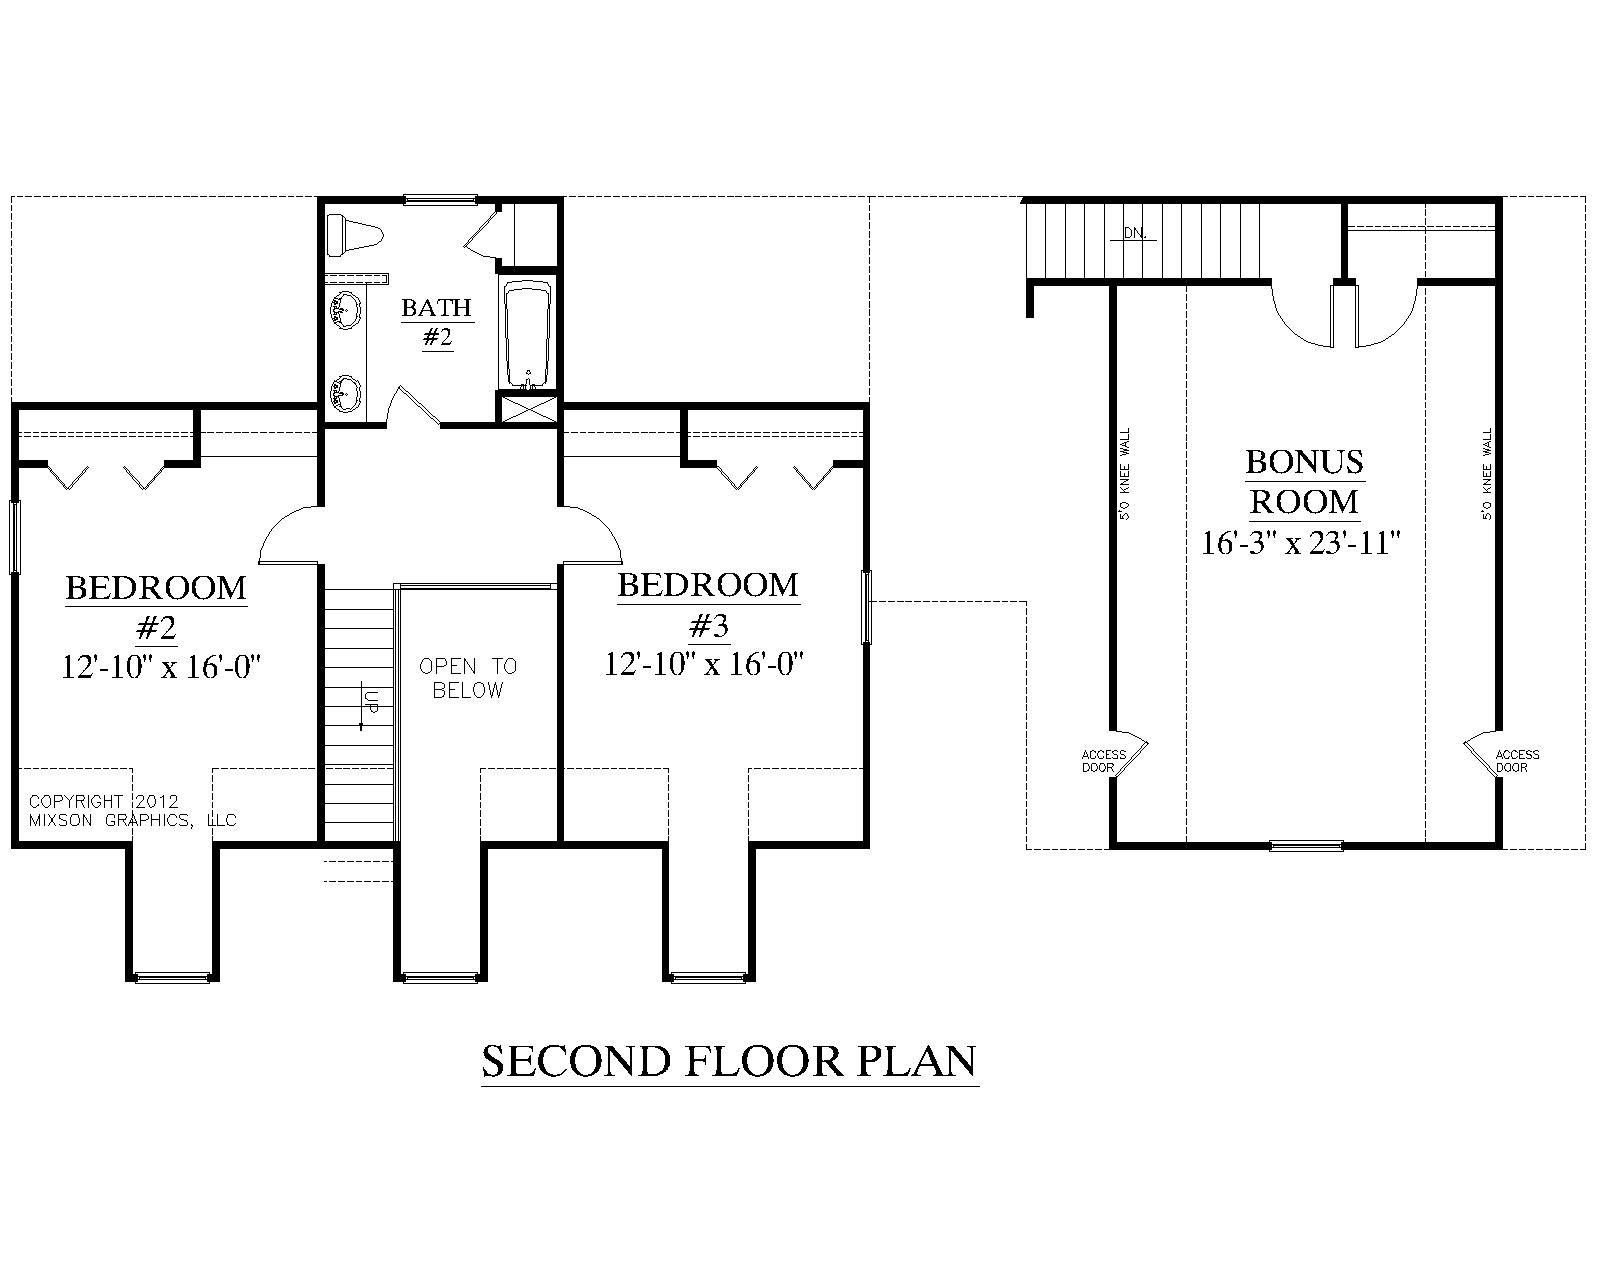 House plan 2091 b mayfield b second floor plan 3 bedroom 2 bath 2 car garage floor plans